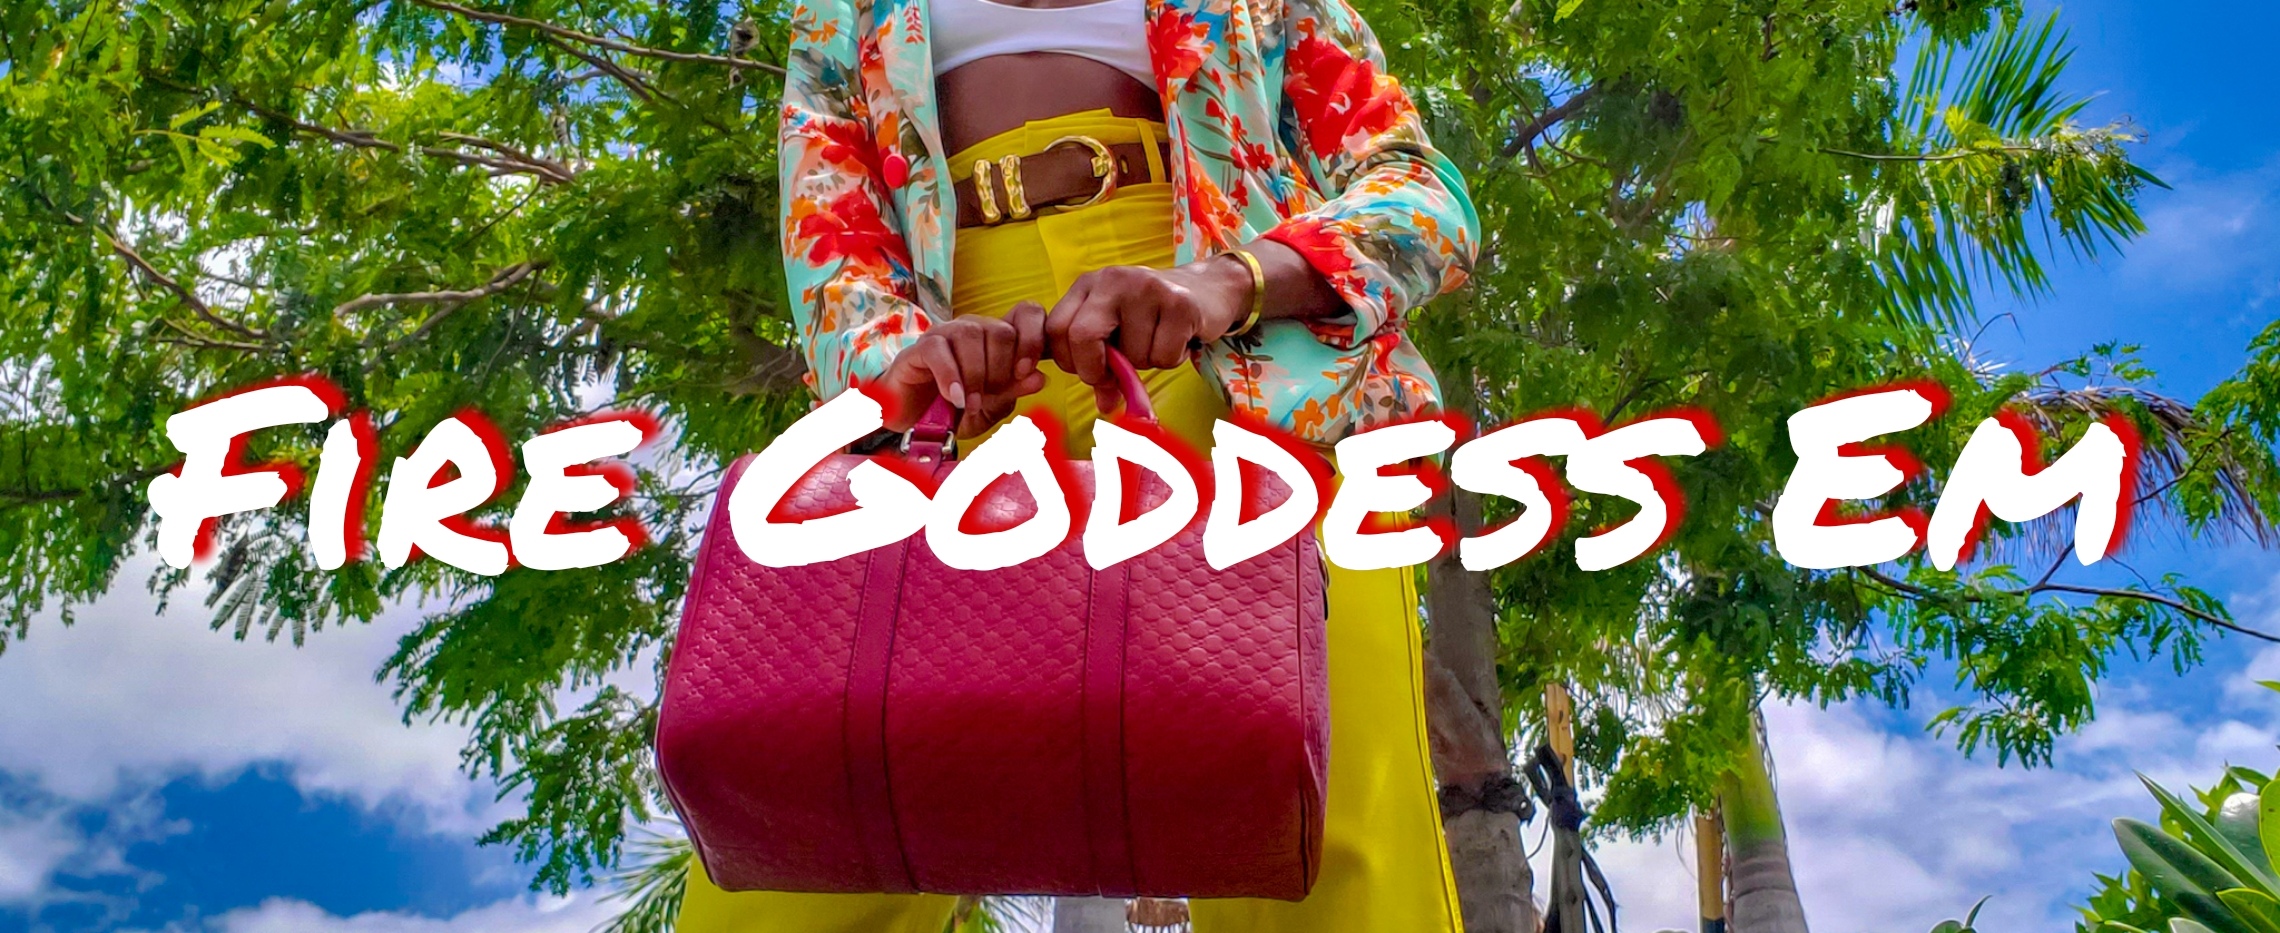 Me with the red Gucci pasta bag and yellow pants with the logo Fire Goddessoddess Em